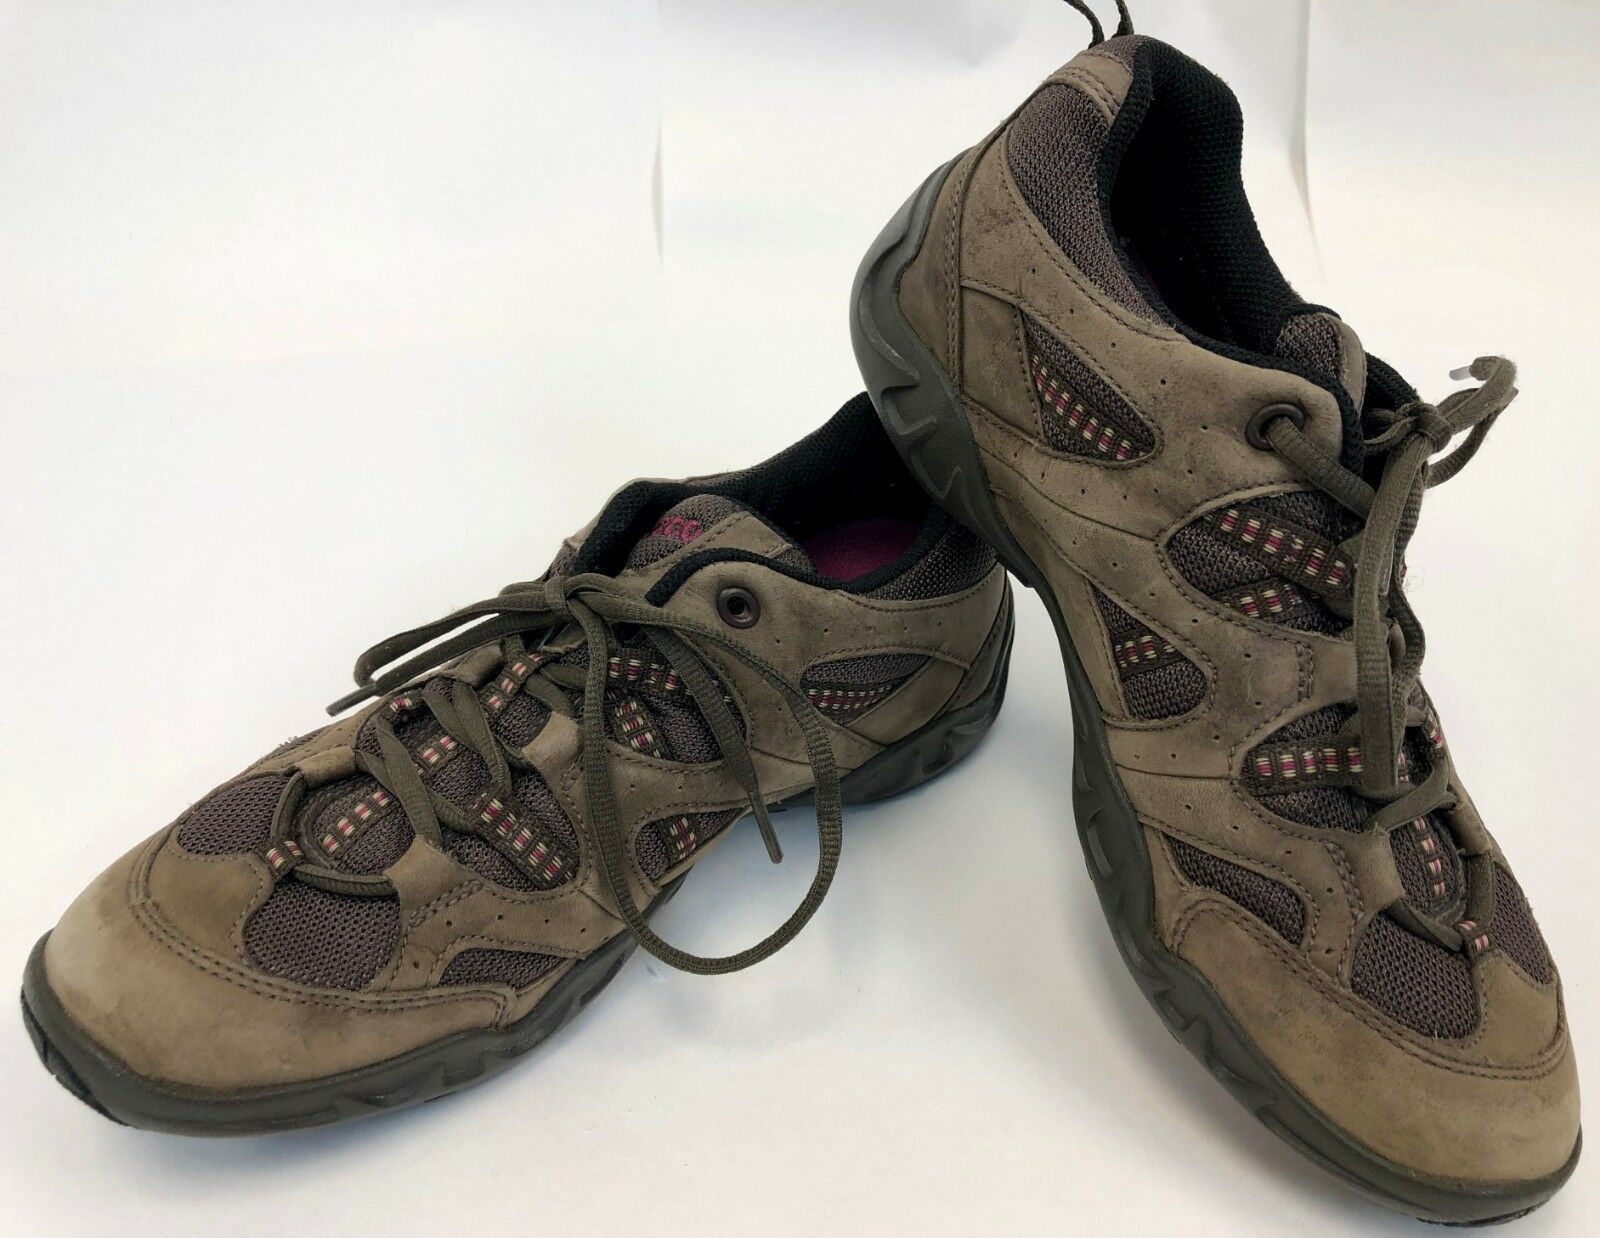 Ecco Womens Receptor Gortex Brown Suede Low Top Hiking Running shoes 7 - 7.5 38L